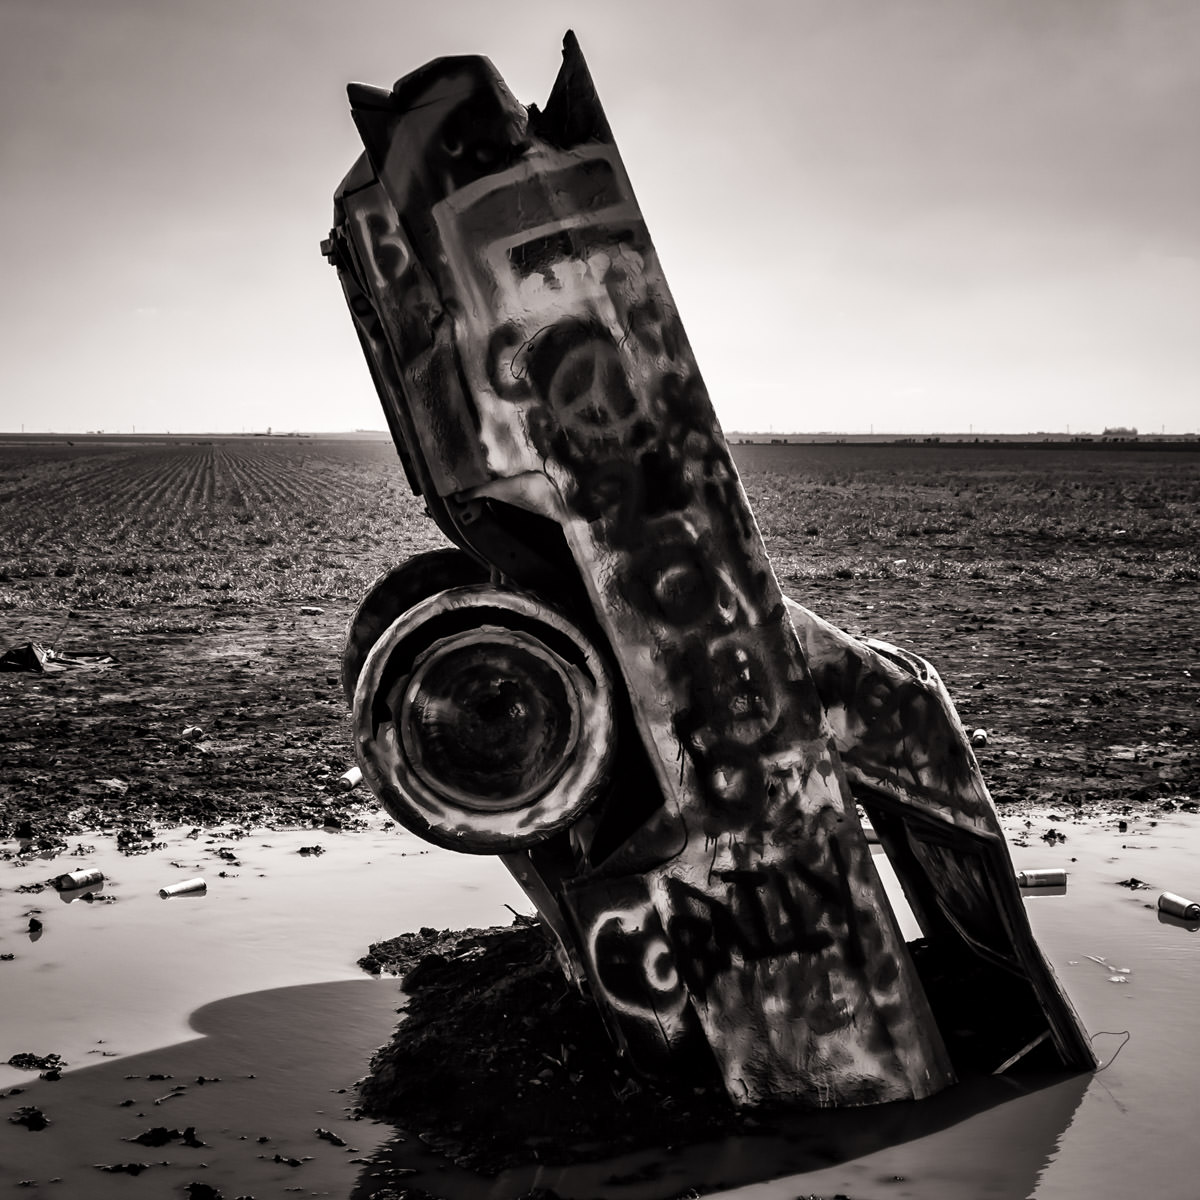 One of the ten Cadillacs at Amarillo, Texas' Cadillac Ranch, stuck nose-first in mud.